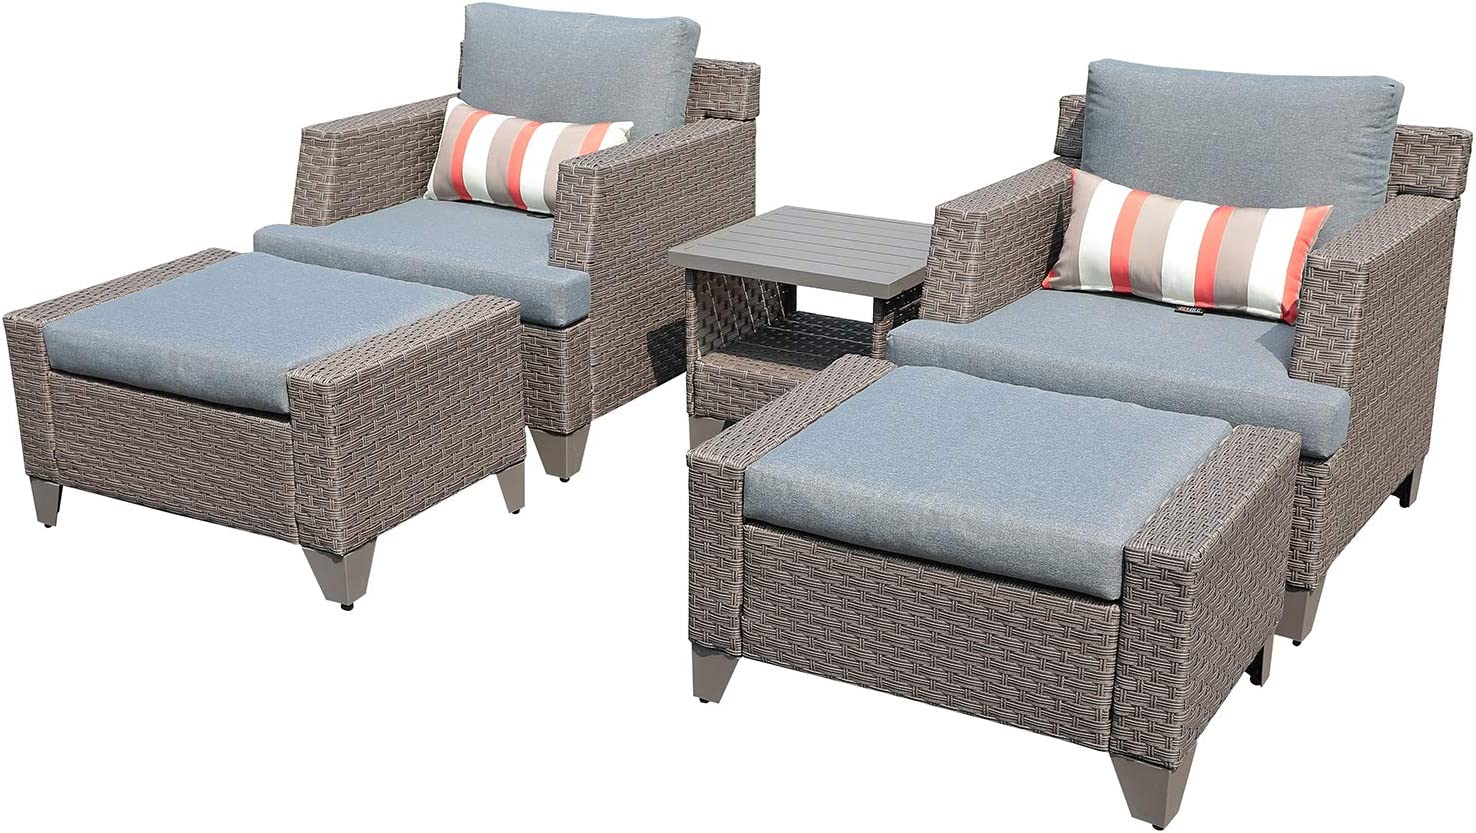 SUNSITT 5-Piece Outdoor Patio Furniture Set, PE Wicker Patio Lounge Chair and Ottoman Set with Grey Cushions & Side Table, Waterproof Furniture Cover Include